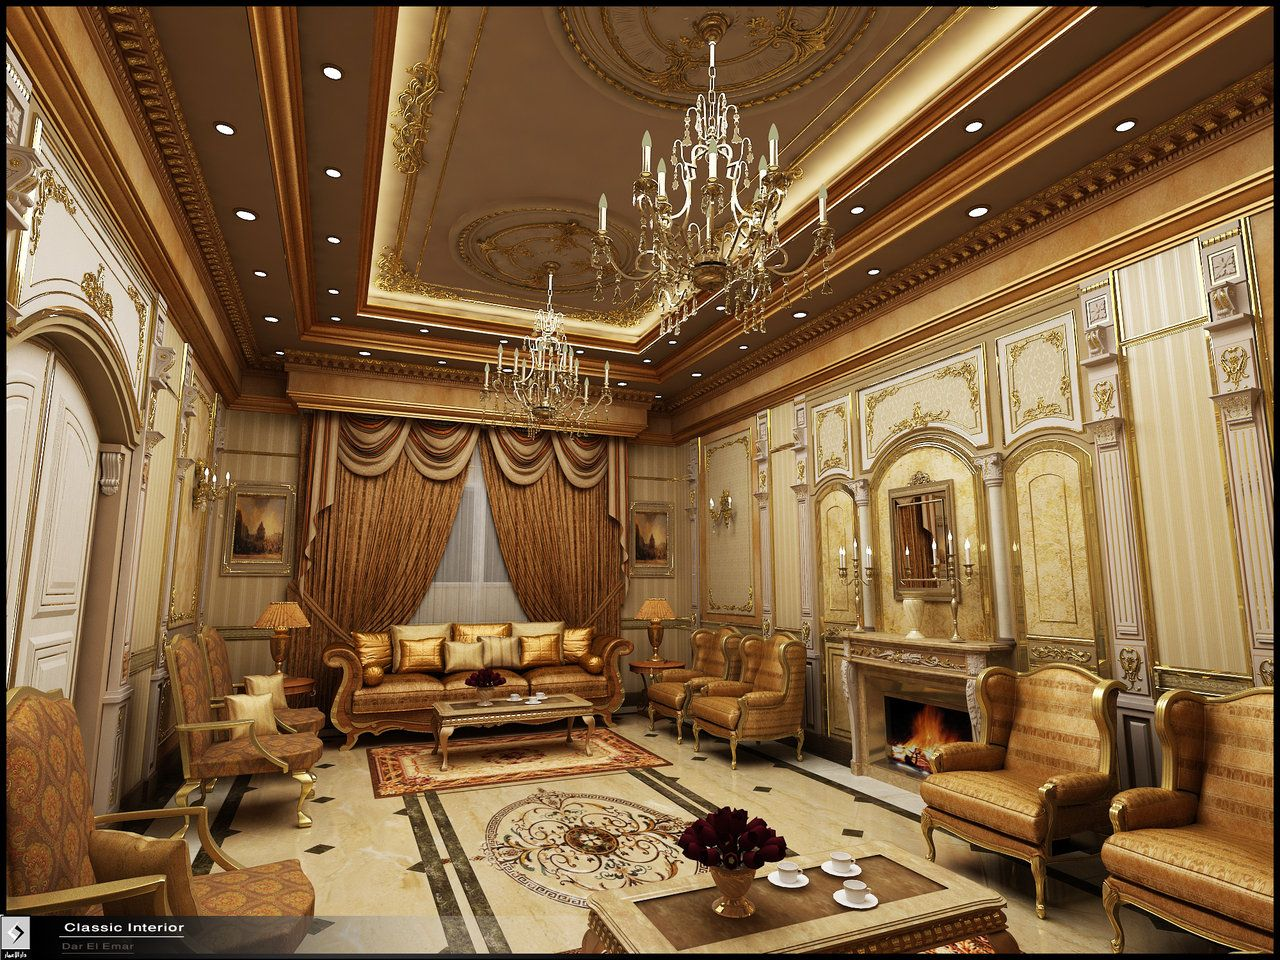 Classic Interior In Ksa By Amr Maged.deviantart.com On @deviantART